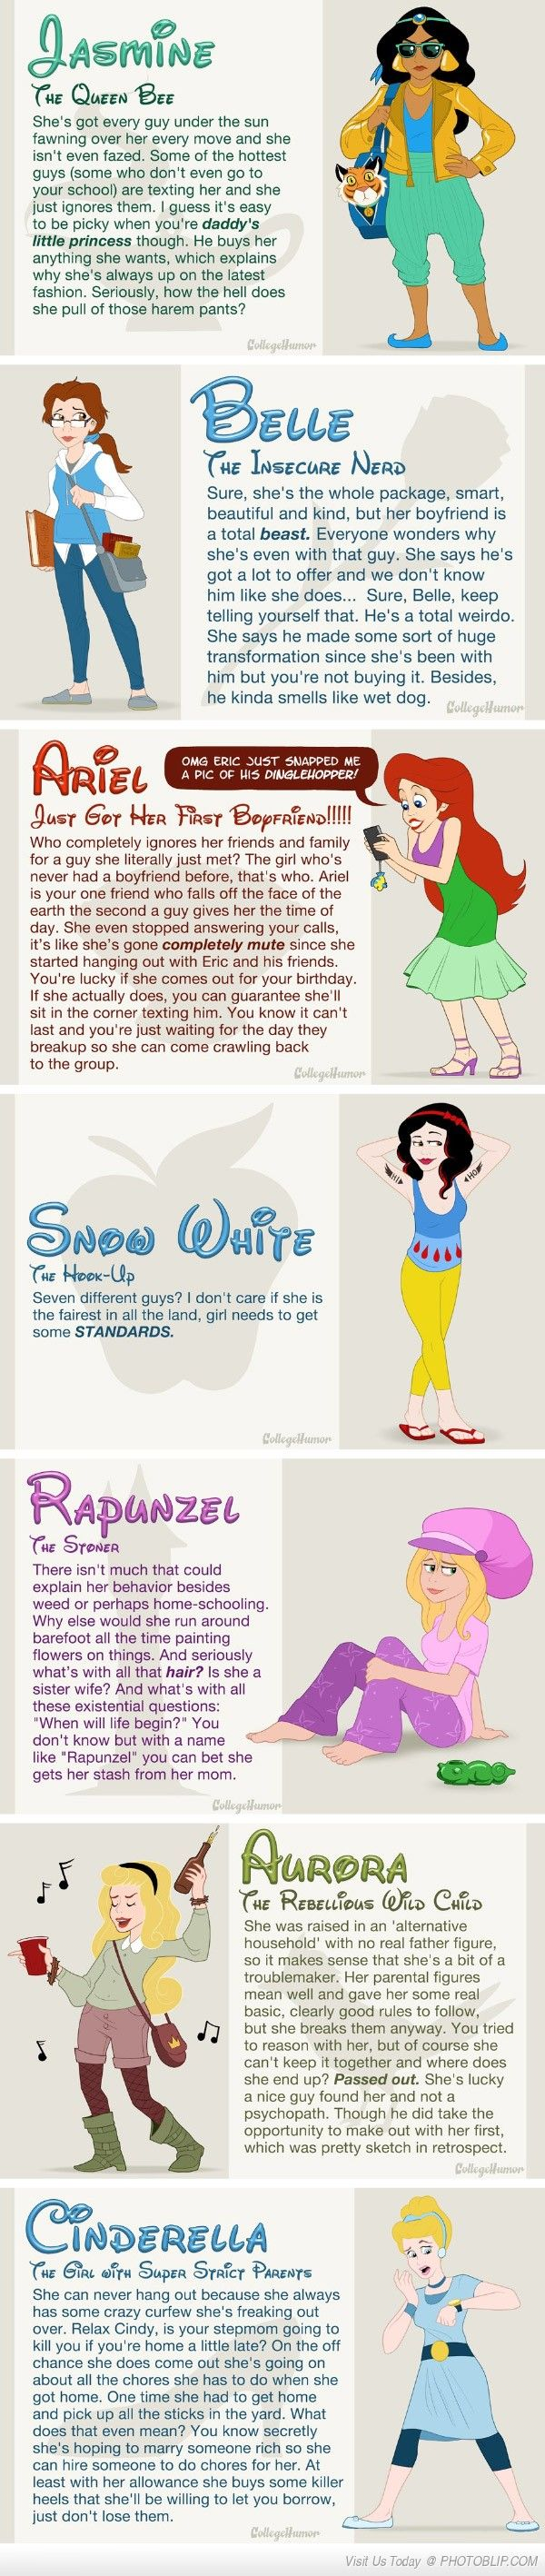 If Disney Princesses Went To High School surprisingly probably accurate.